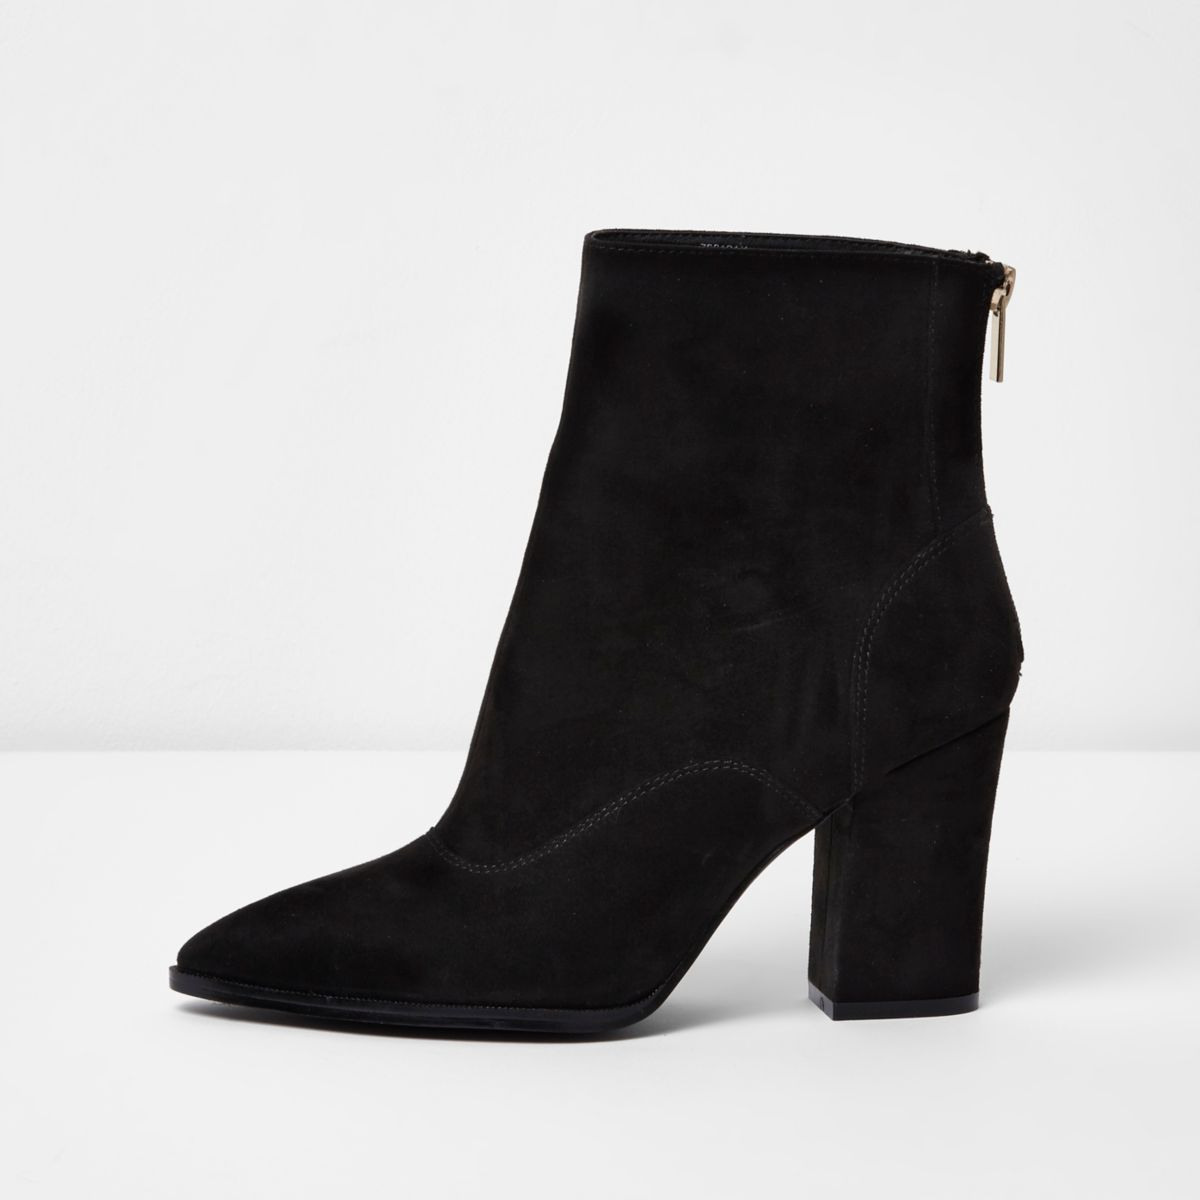 Black wide fit pointed toe ankle boots